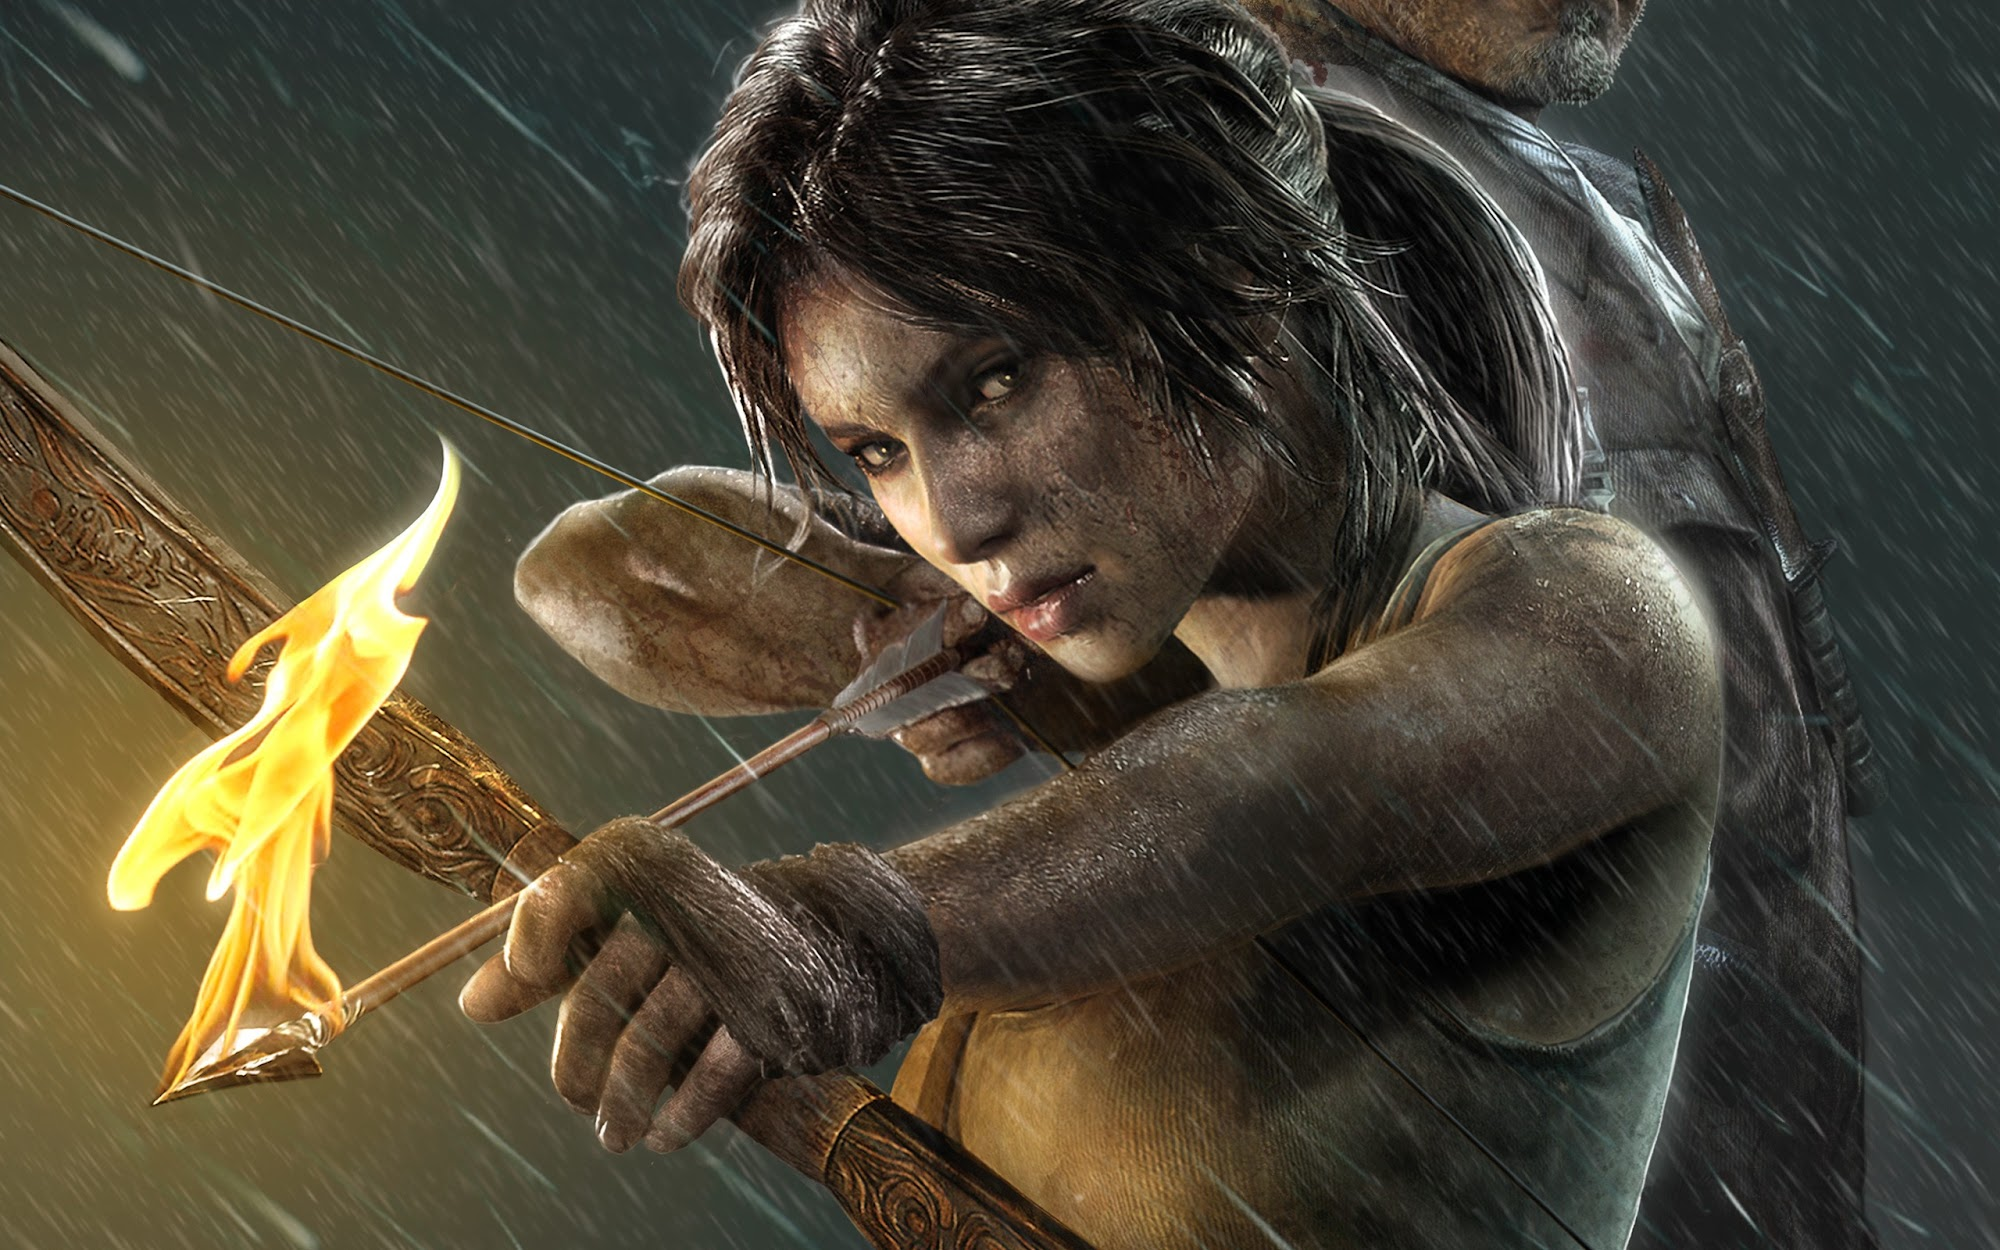 http://2.bp.blogspot.com/-QvS0Z5m3V2s/UQqTCxpR8kI/AAAAAAAAHGo/iiggg-Q4cek/s2000/Tomb-Raider-Lara-Croft-2013-Flaming-Arrow-HD-Wallpaper_Vvallpaper.Net.jpg